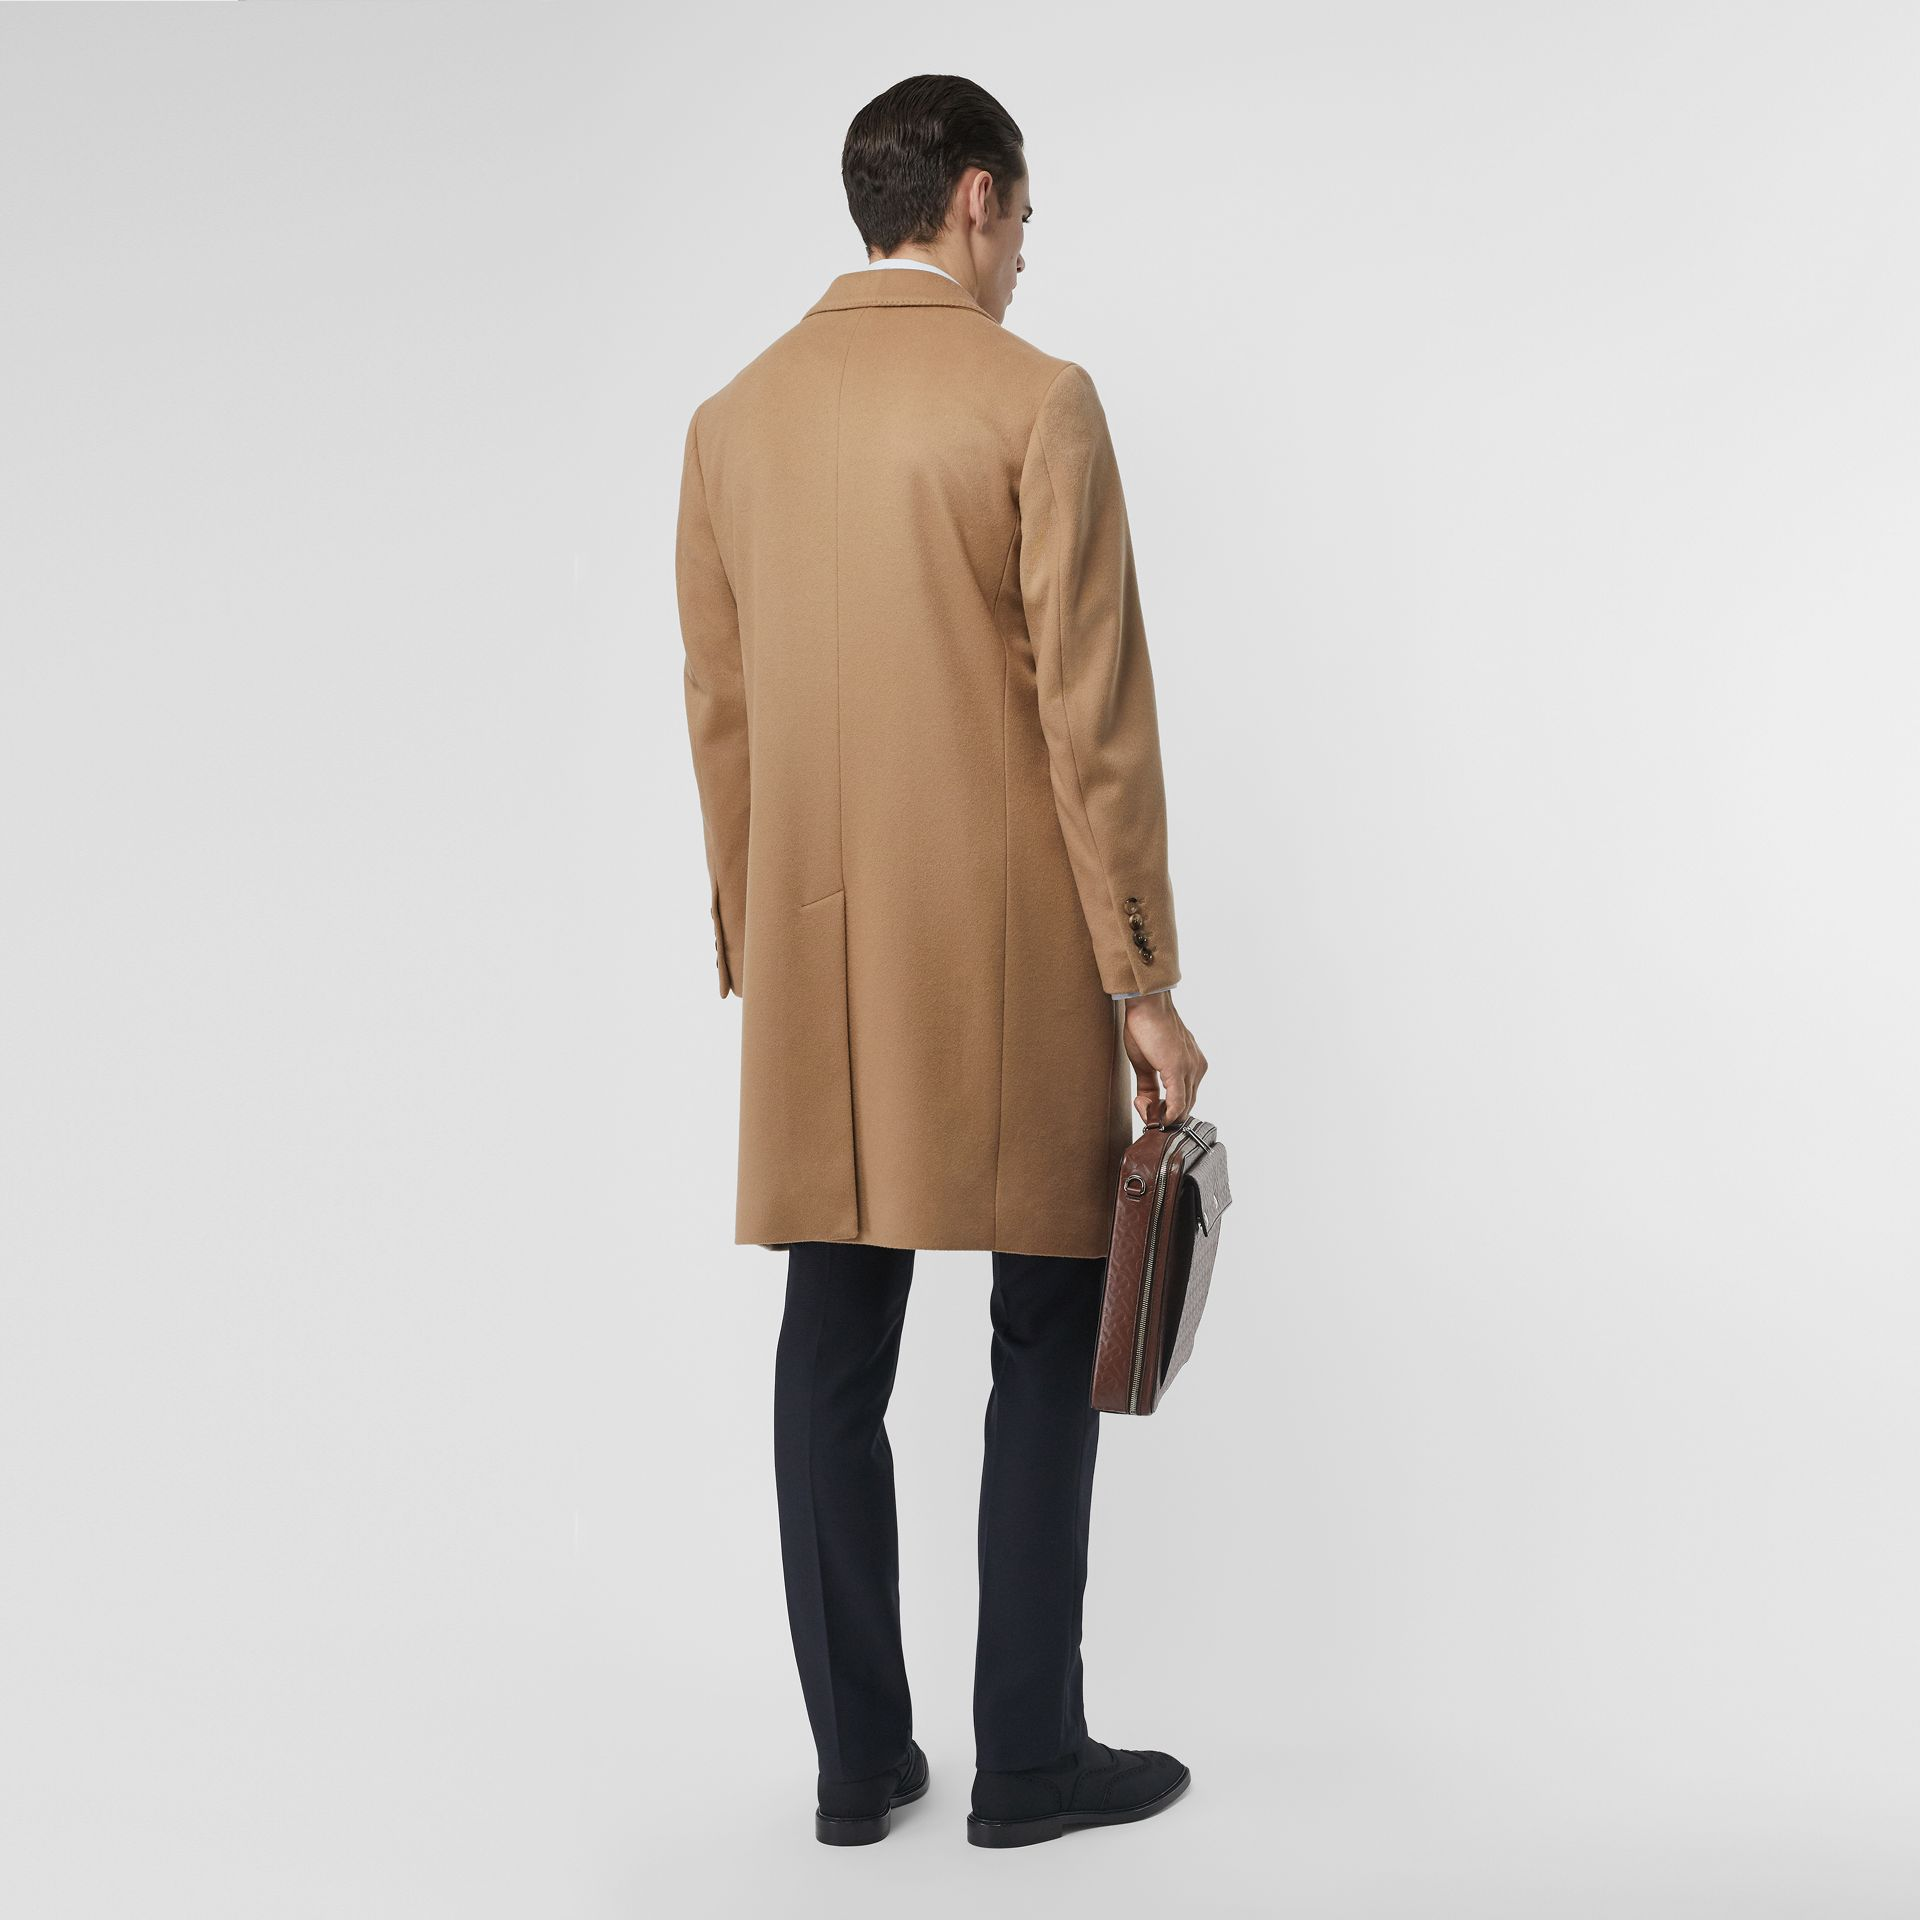 Wool Cashmere Tailored Coat in Camel - Men | Burberry United Kingdom - gallery image 2